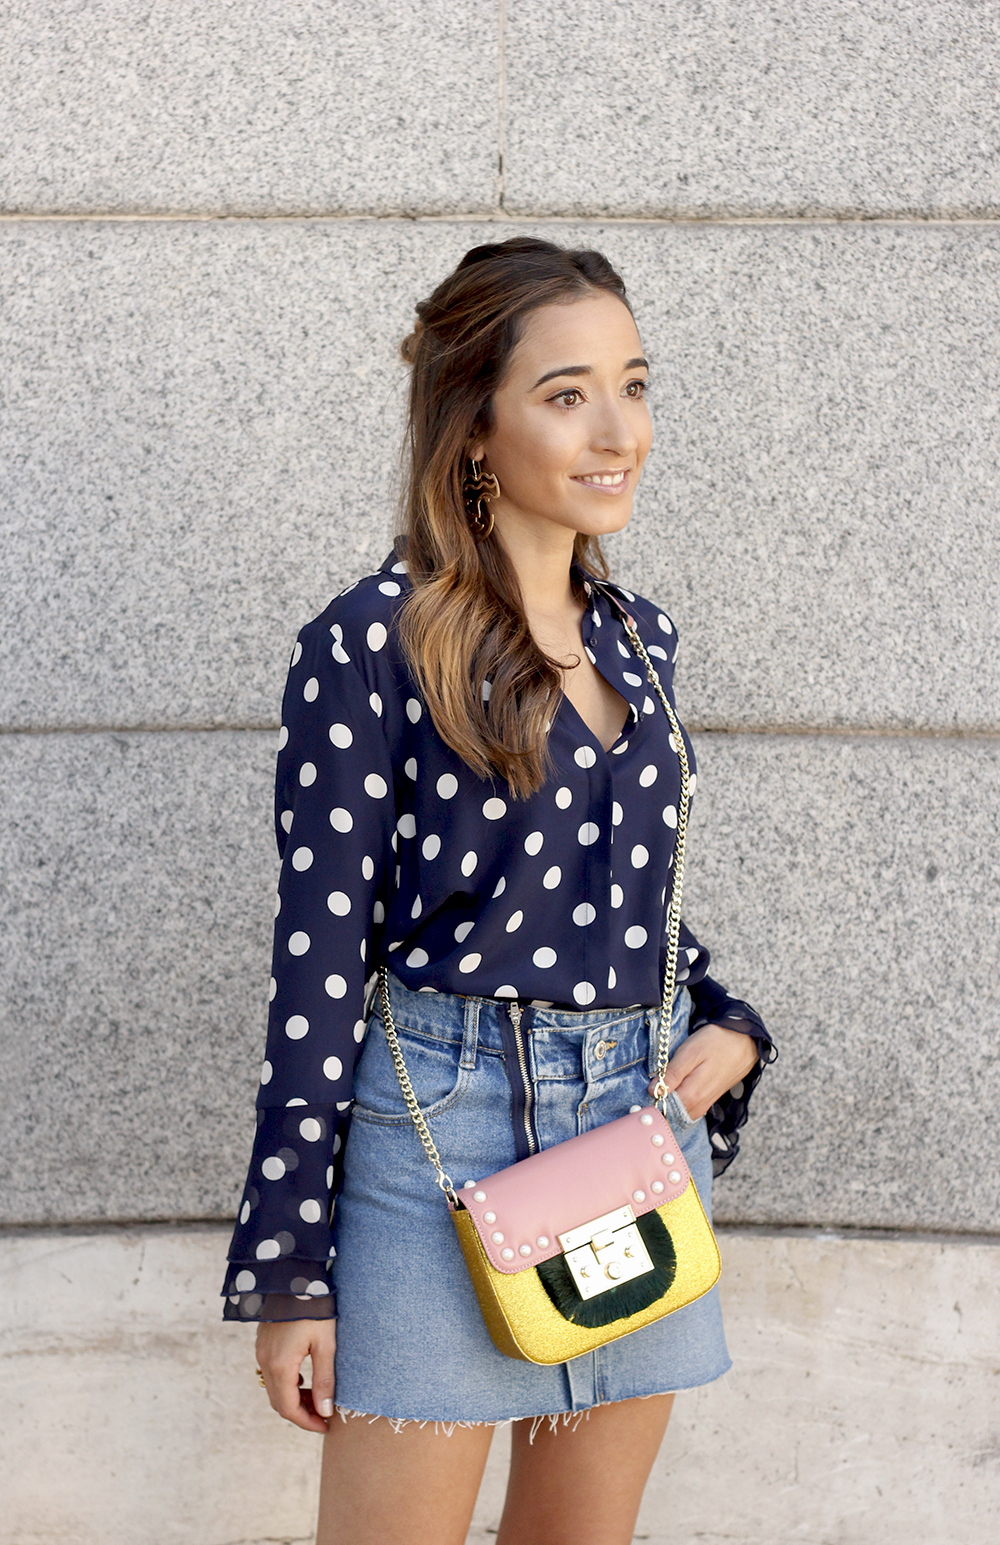 Polka dots shirt uterqüe bolso denim skirt girl outfit fashion12